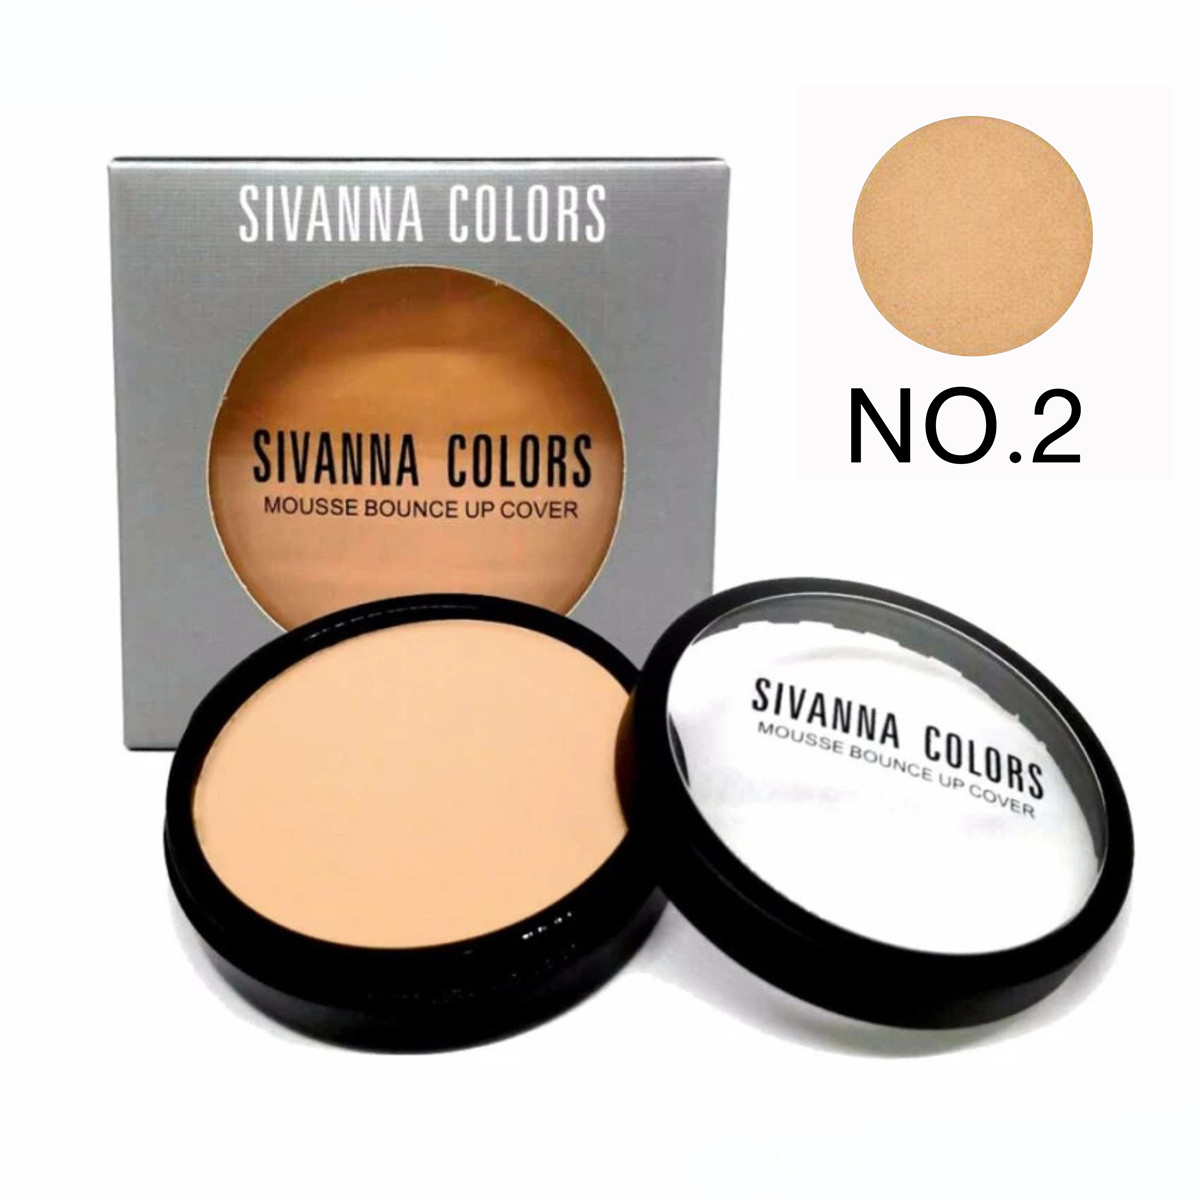 Sivanna Colors รองพื้นดินน้ำมัน Mousse bounce up cover HF144 No.02